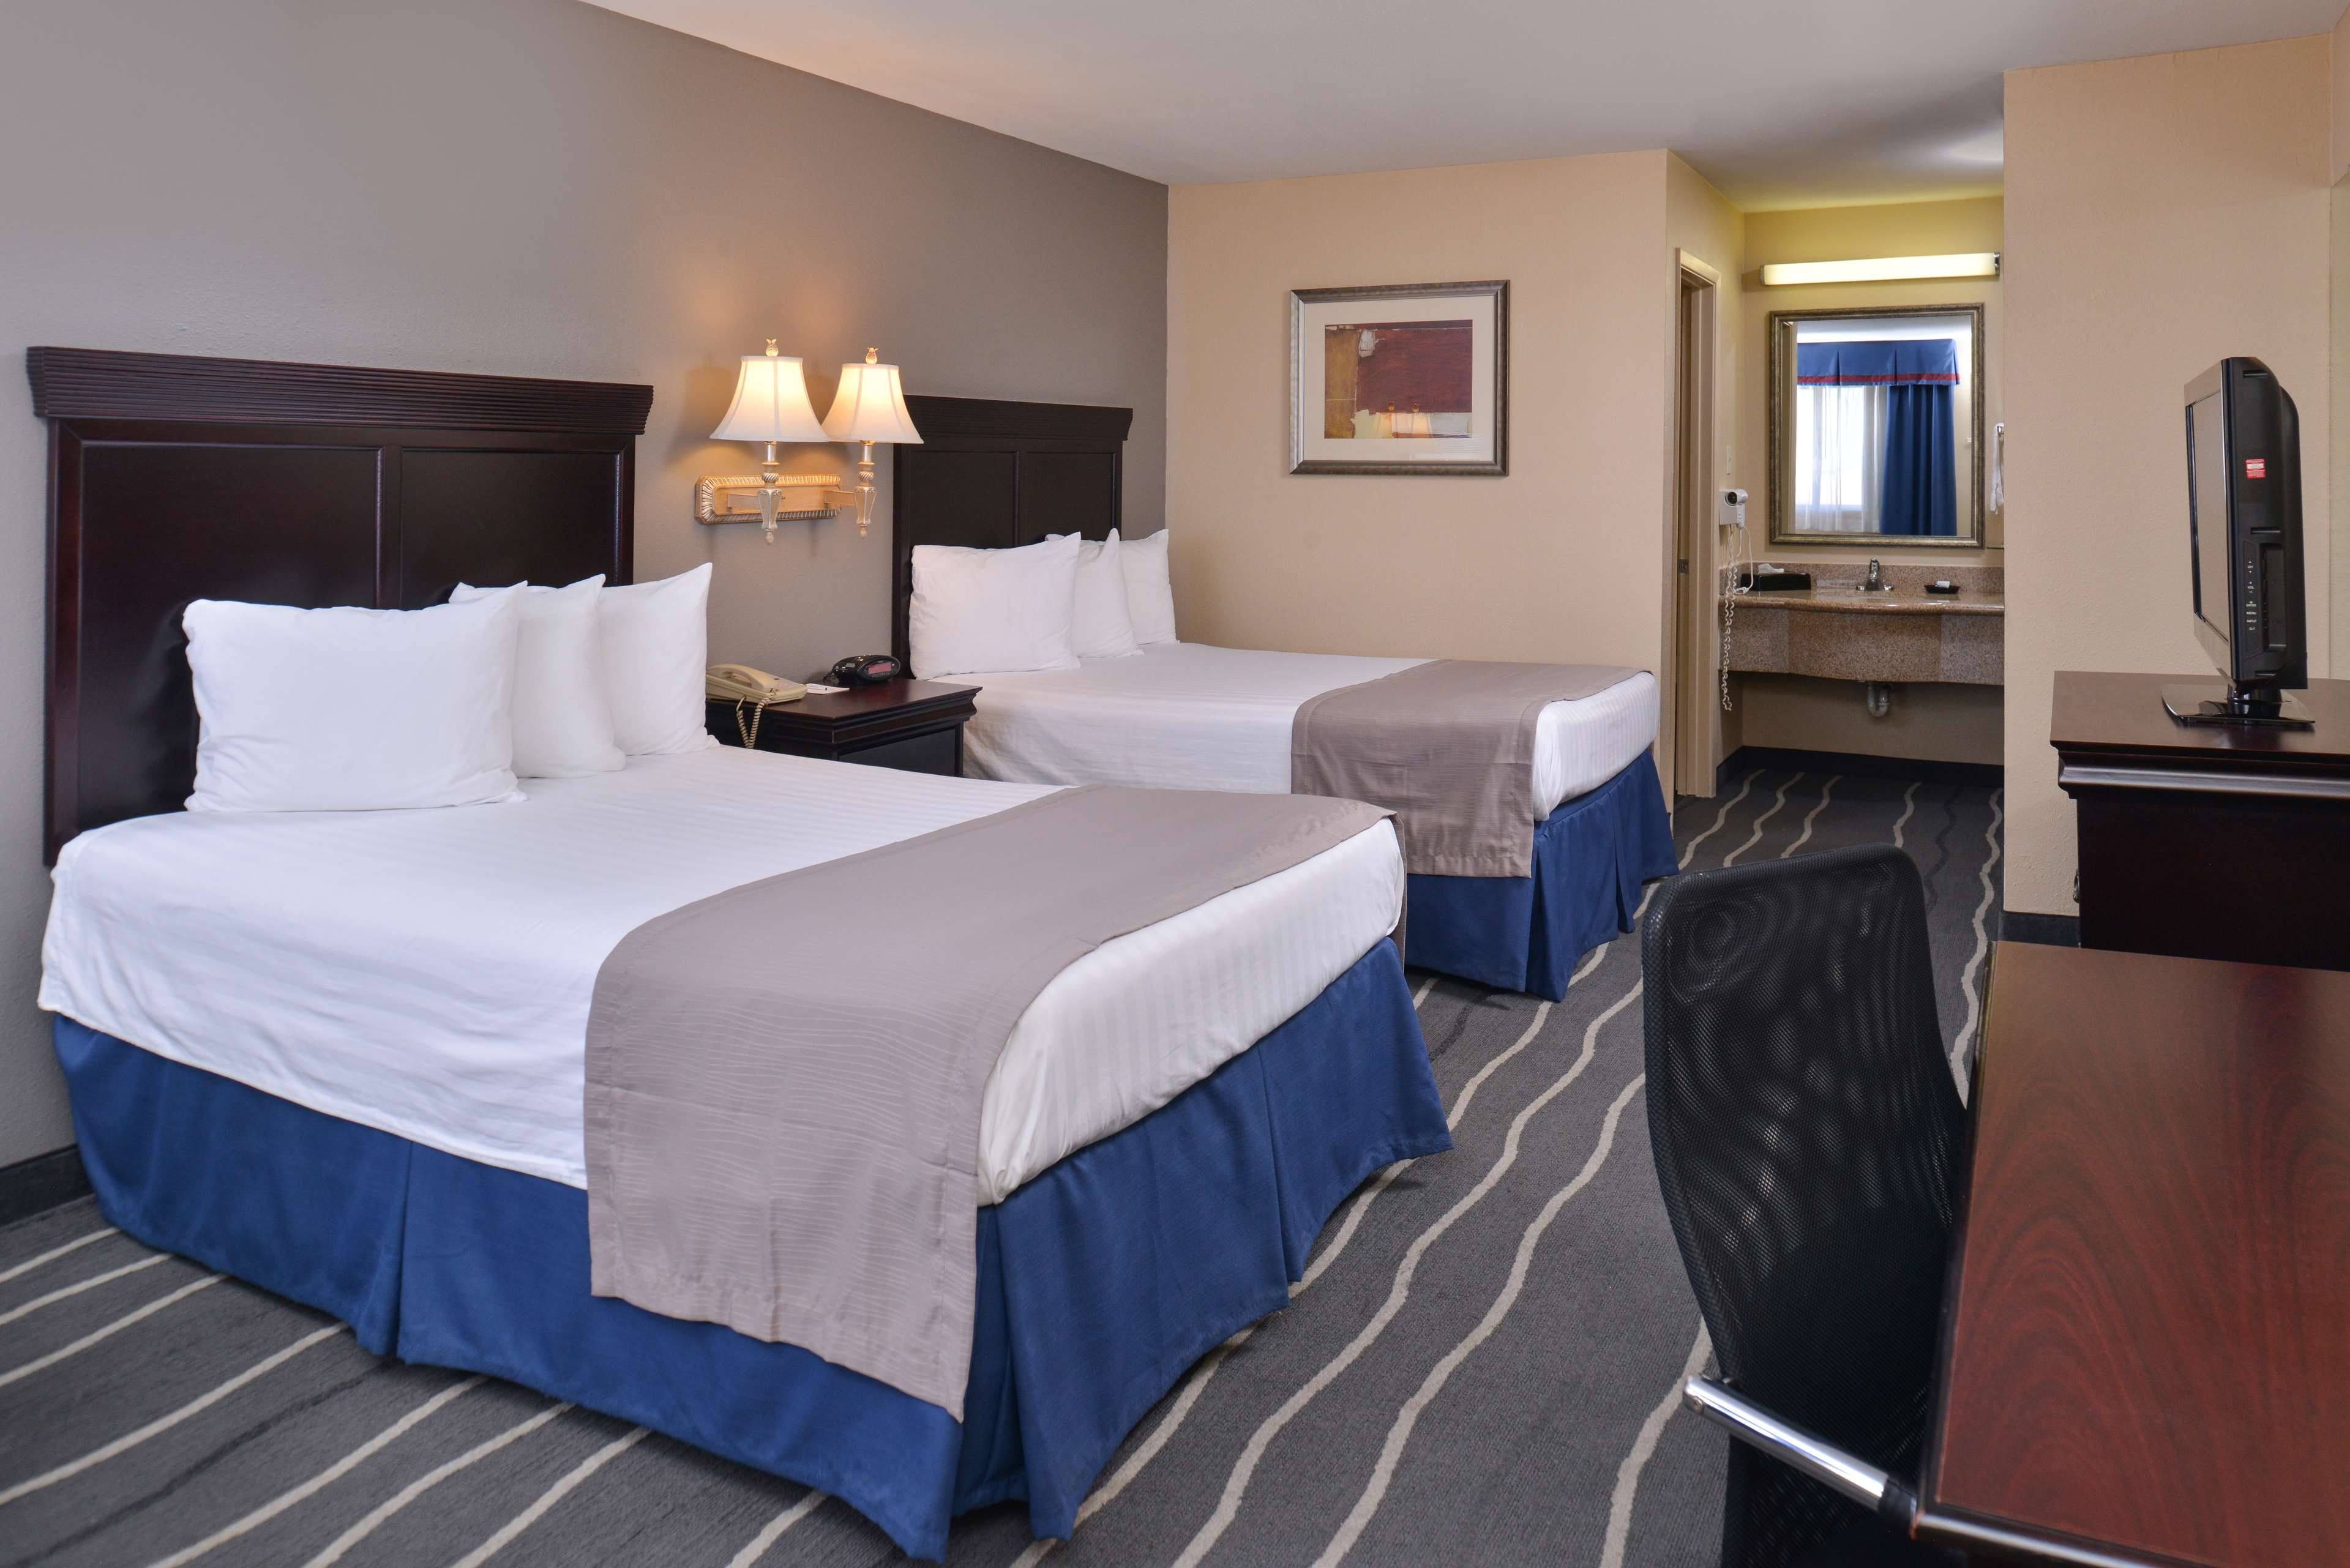 Best Western Irving Inn & Suites at DFW Airport image 15